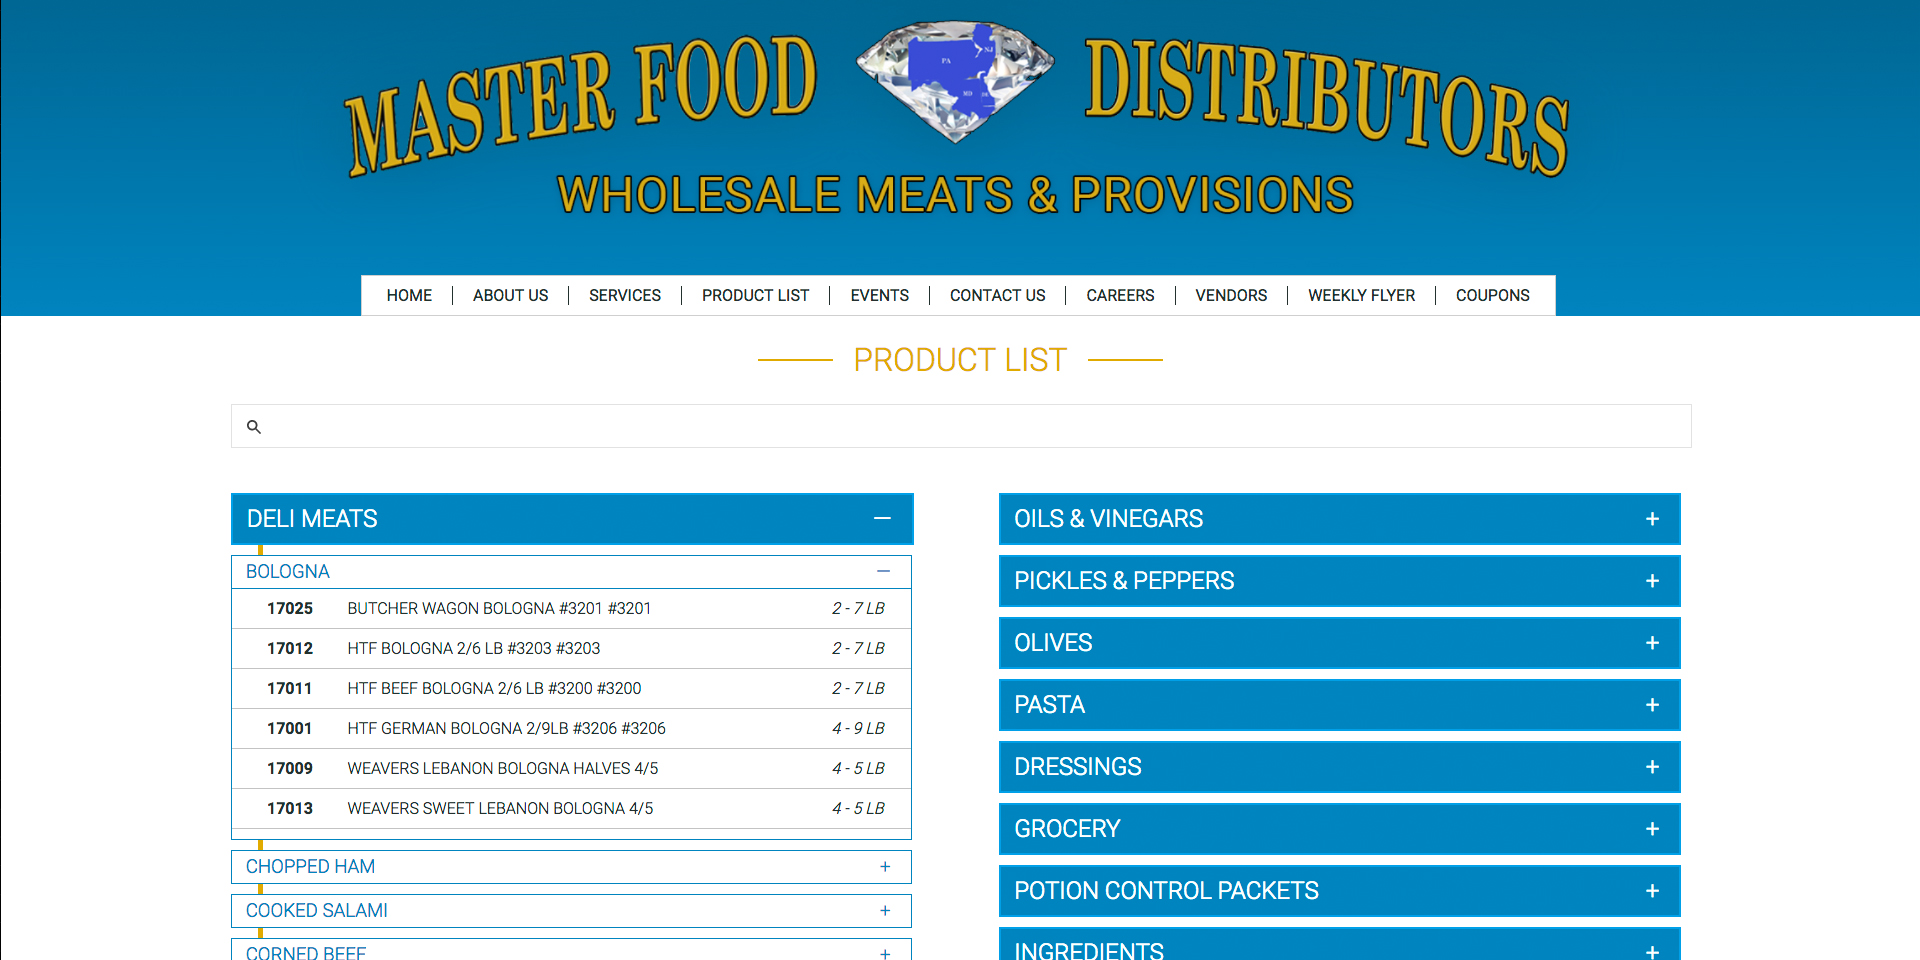 Responsive product list for the Masterfood website